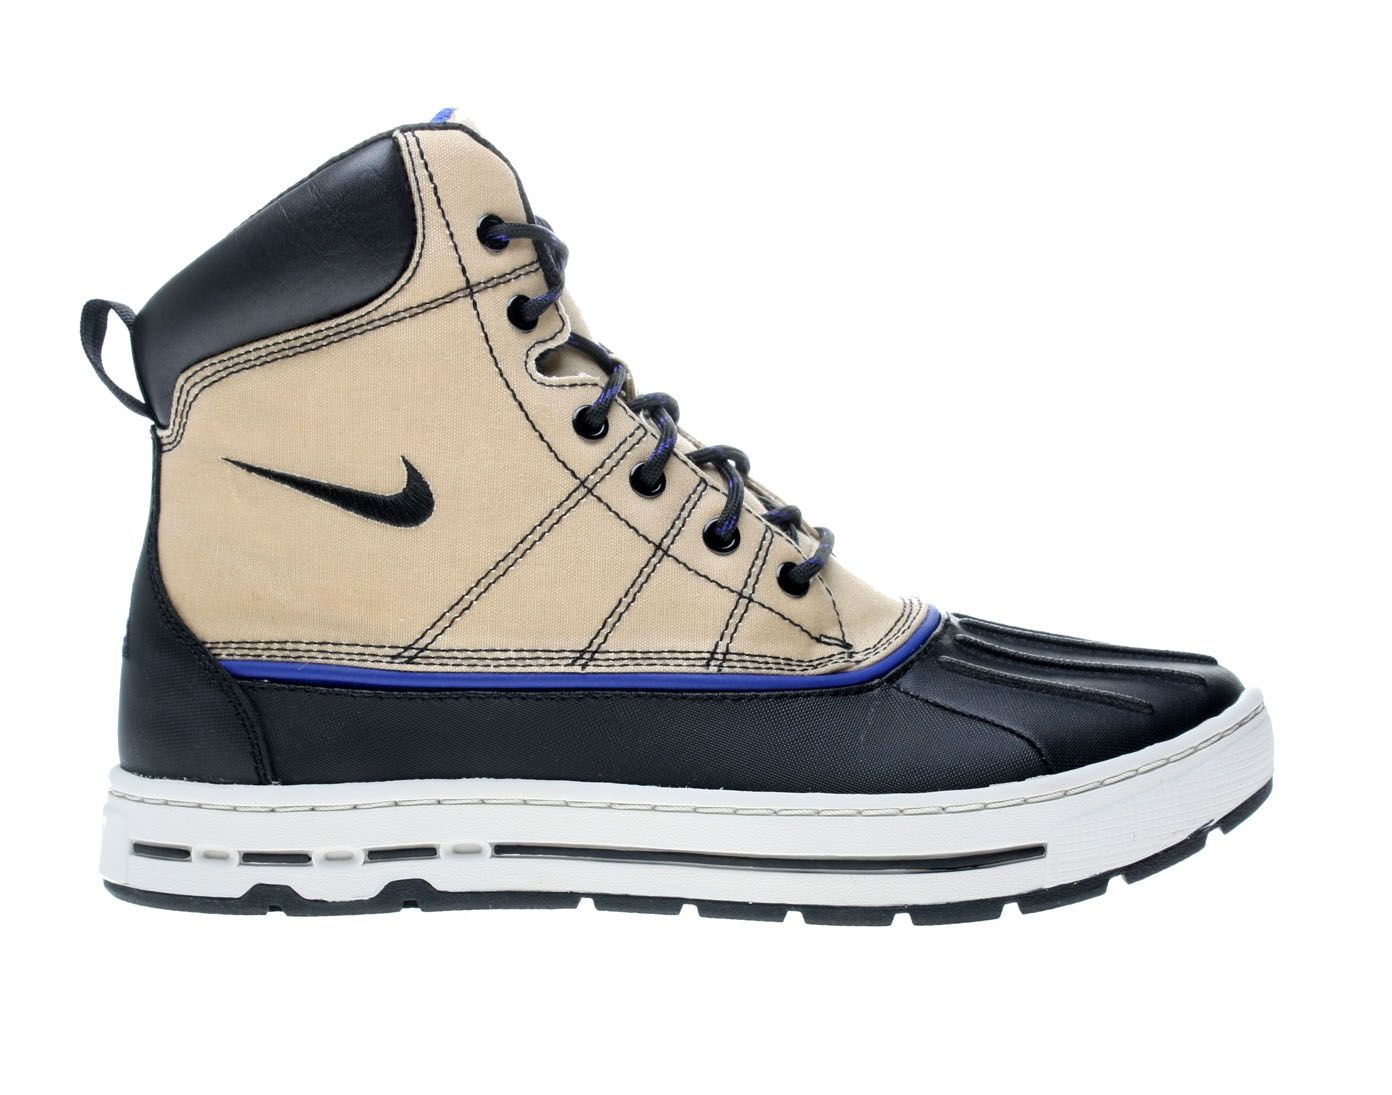 cec6bc5bff3e49 Nike Acg Boots 2013 Red Nike acg woodside boots 2013